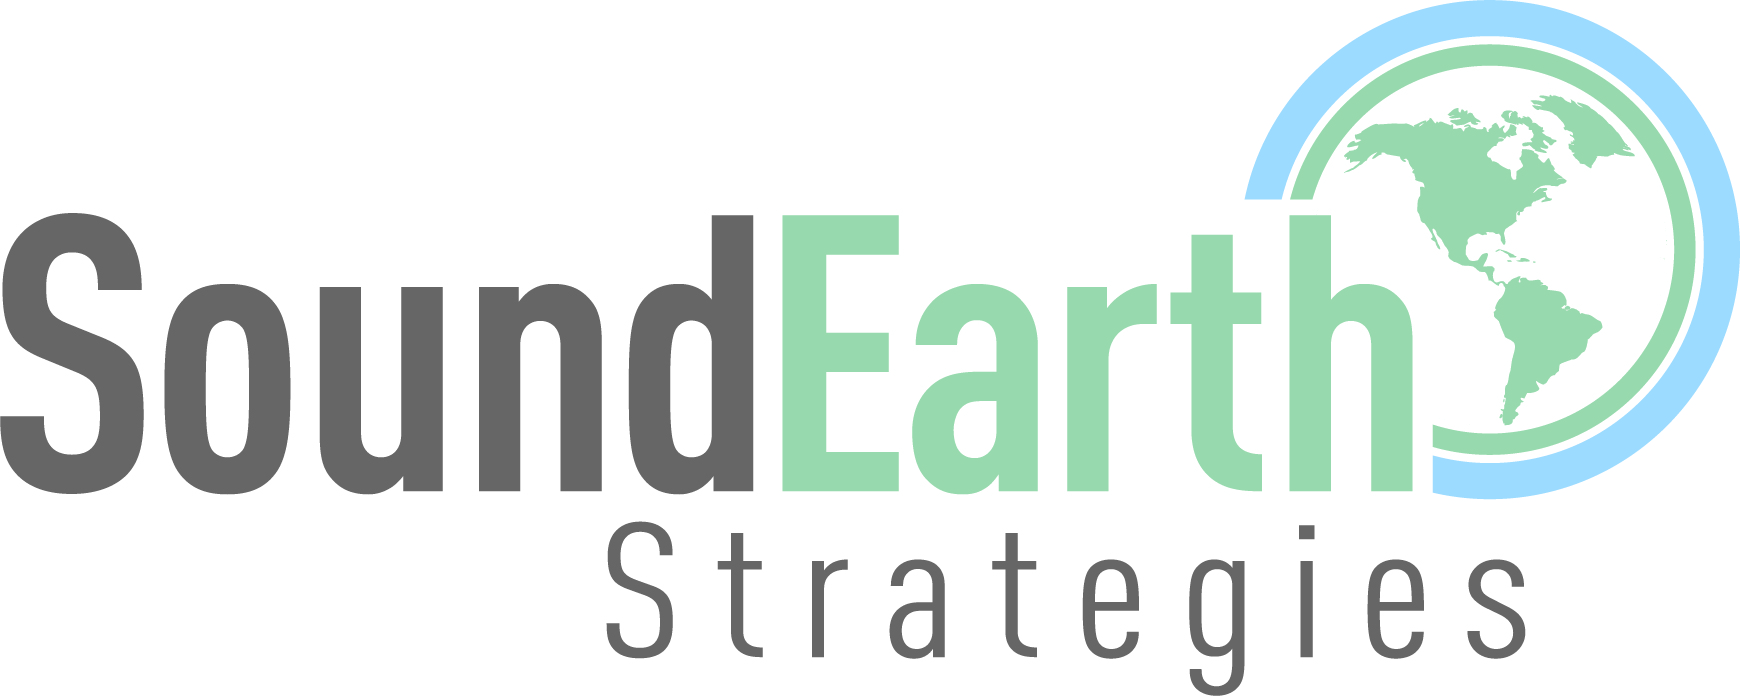 SoundEarth Strategies Acquires EHSI; Environmental Consulting Firms Pursue Expansion Through Strategic Partnership